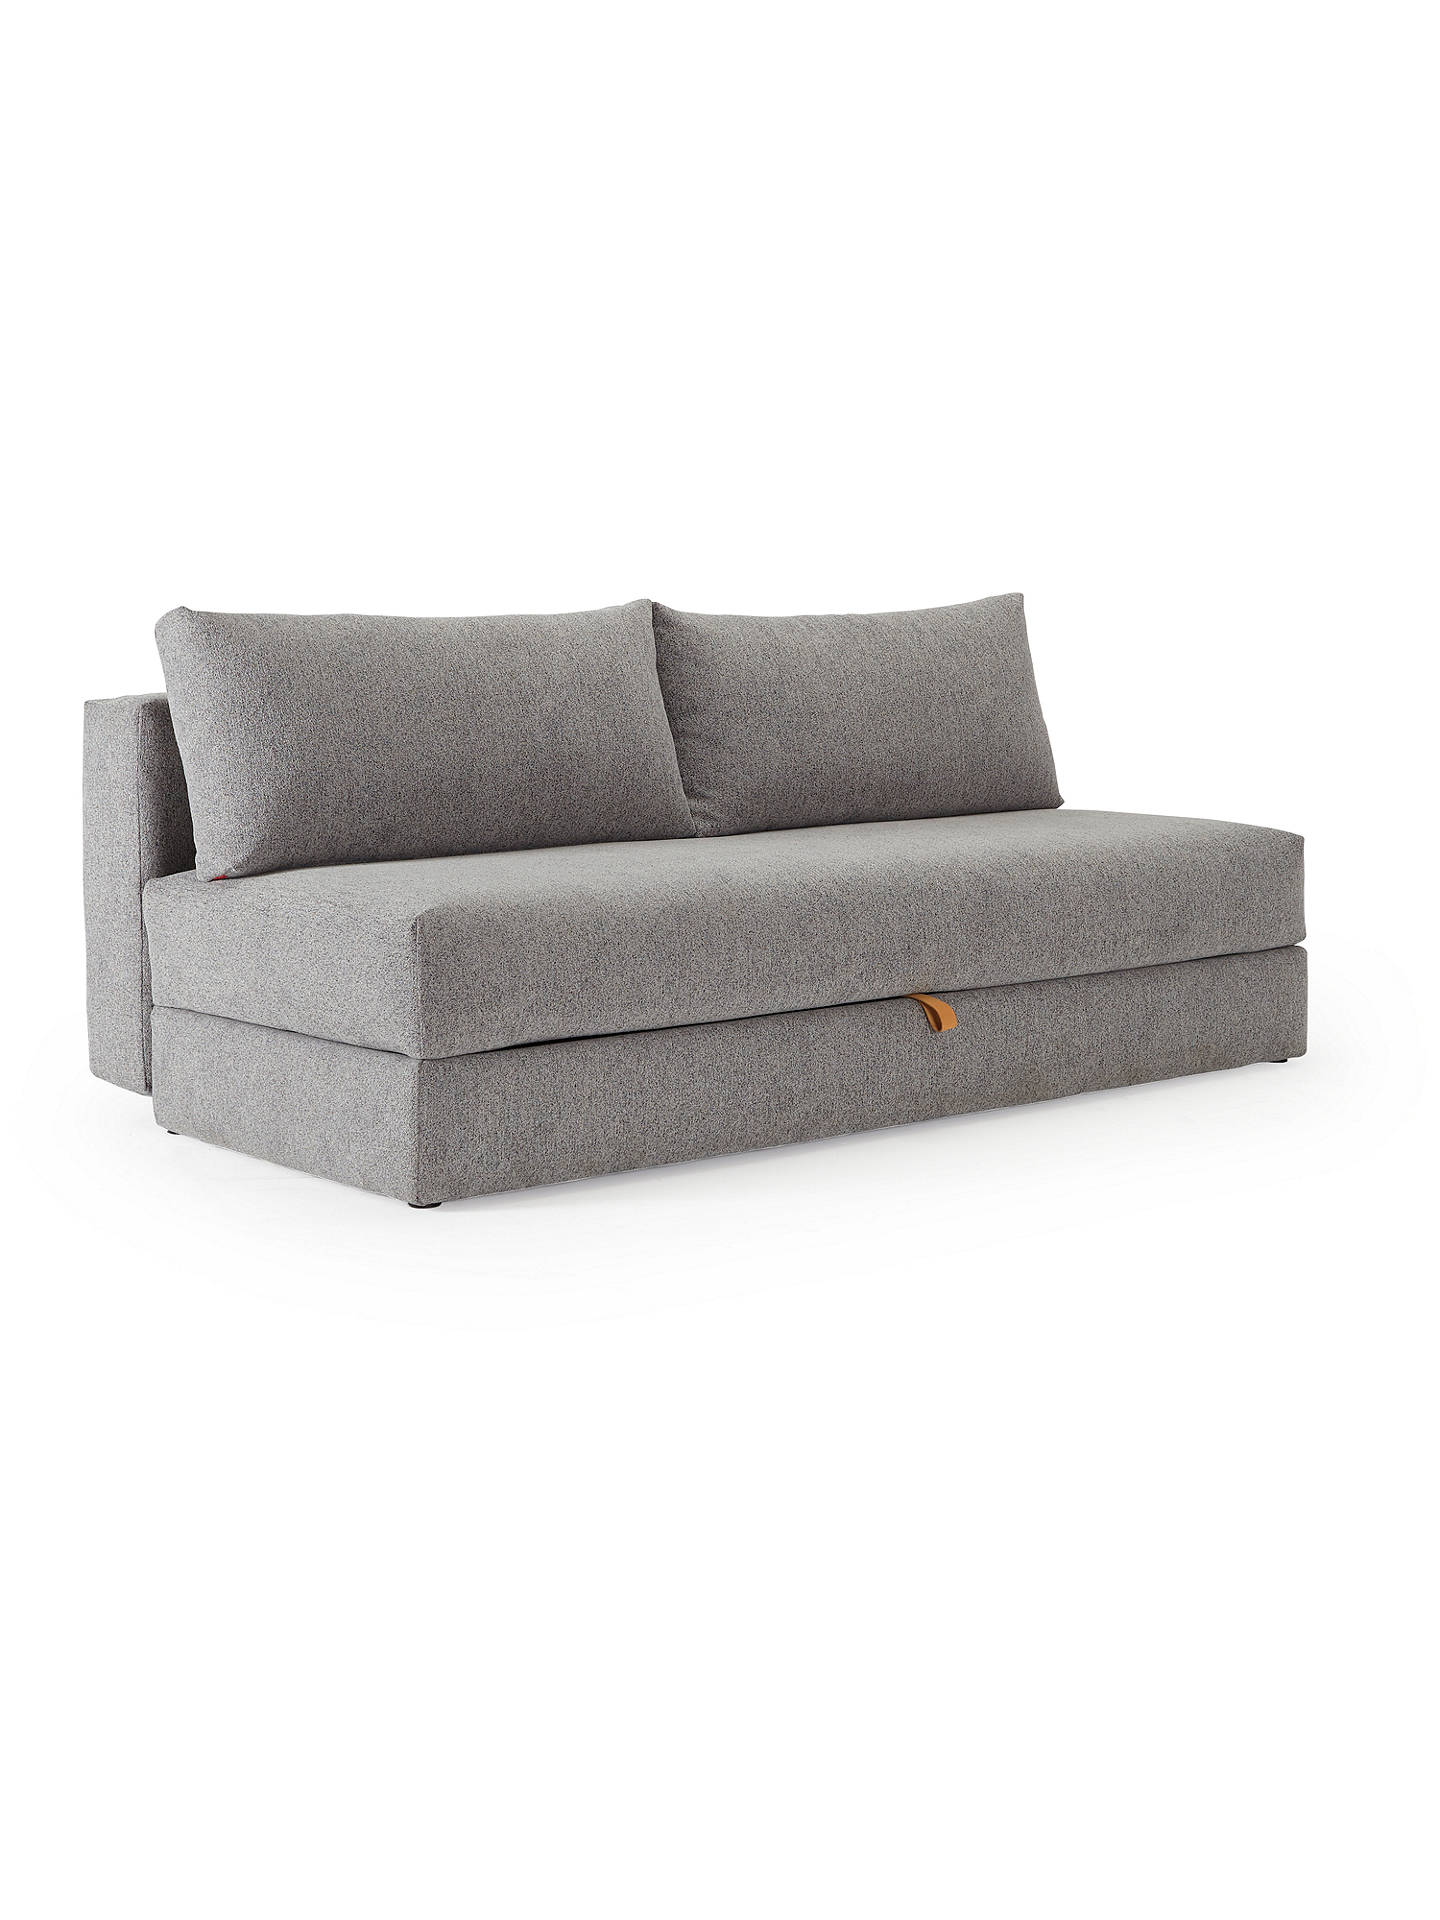 Innovation Living Osvald Sofa Bed With Pocket Sprung Mattress Dark Leg Melange Light Grey